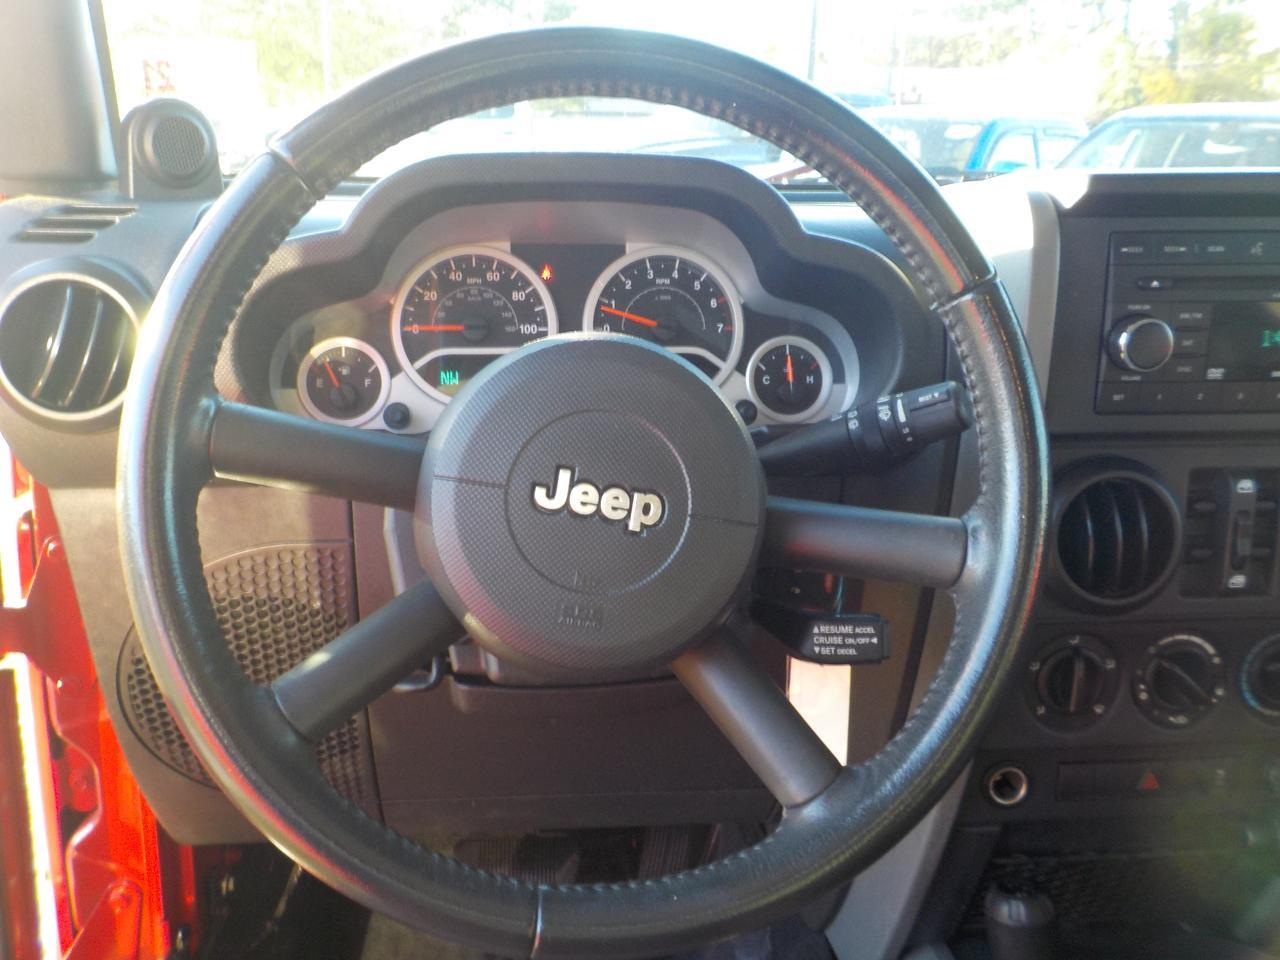 2010 JEEP WRANGLER UNLIMITED SPORT 4X4, ONE OWNER, HARD TOP, RUNNING BOARDS, TOW PACKAGE, BLUETOOTH! Virginia Beach VA